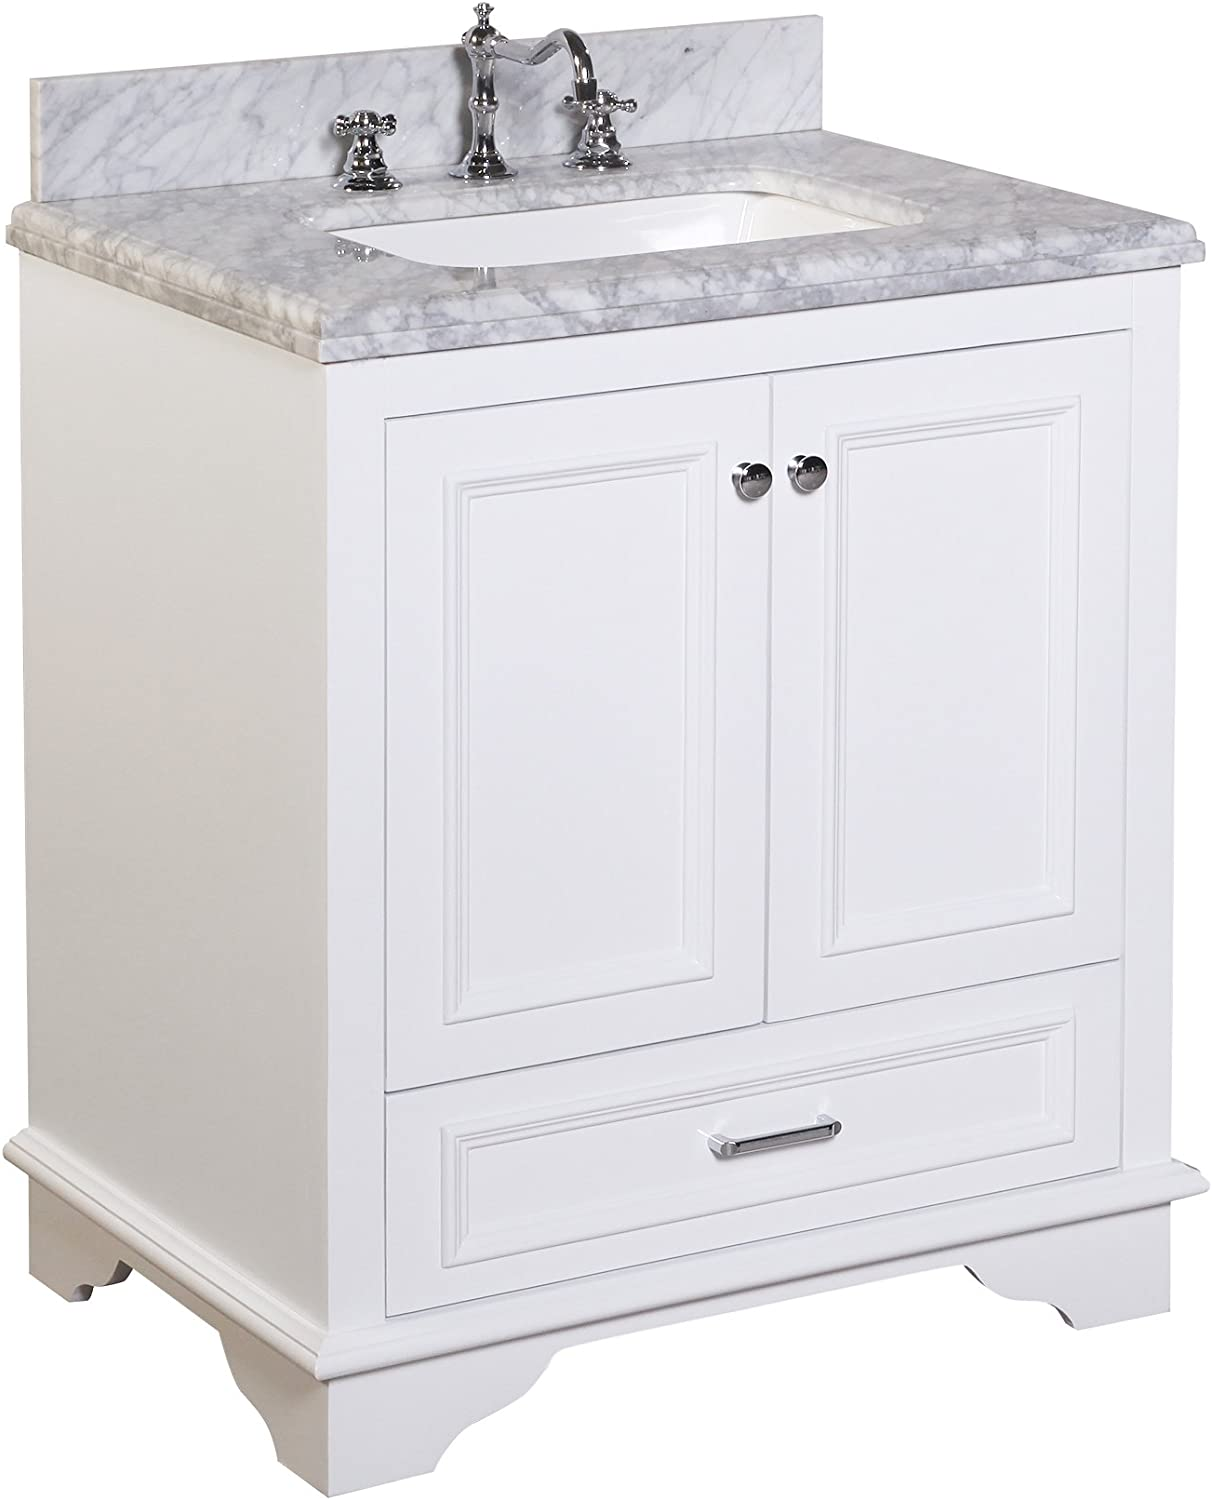 Nantucket 30-inch Bathroom Vanity Carrara White Includes White Cabinet with Soft Close Drawers Self Closing Doors, Authentic Italian Carrara Marble Top, and White Ceramic Sink